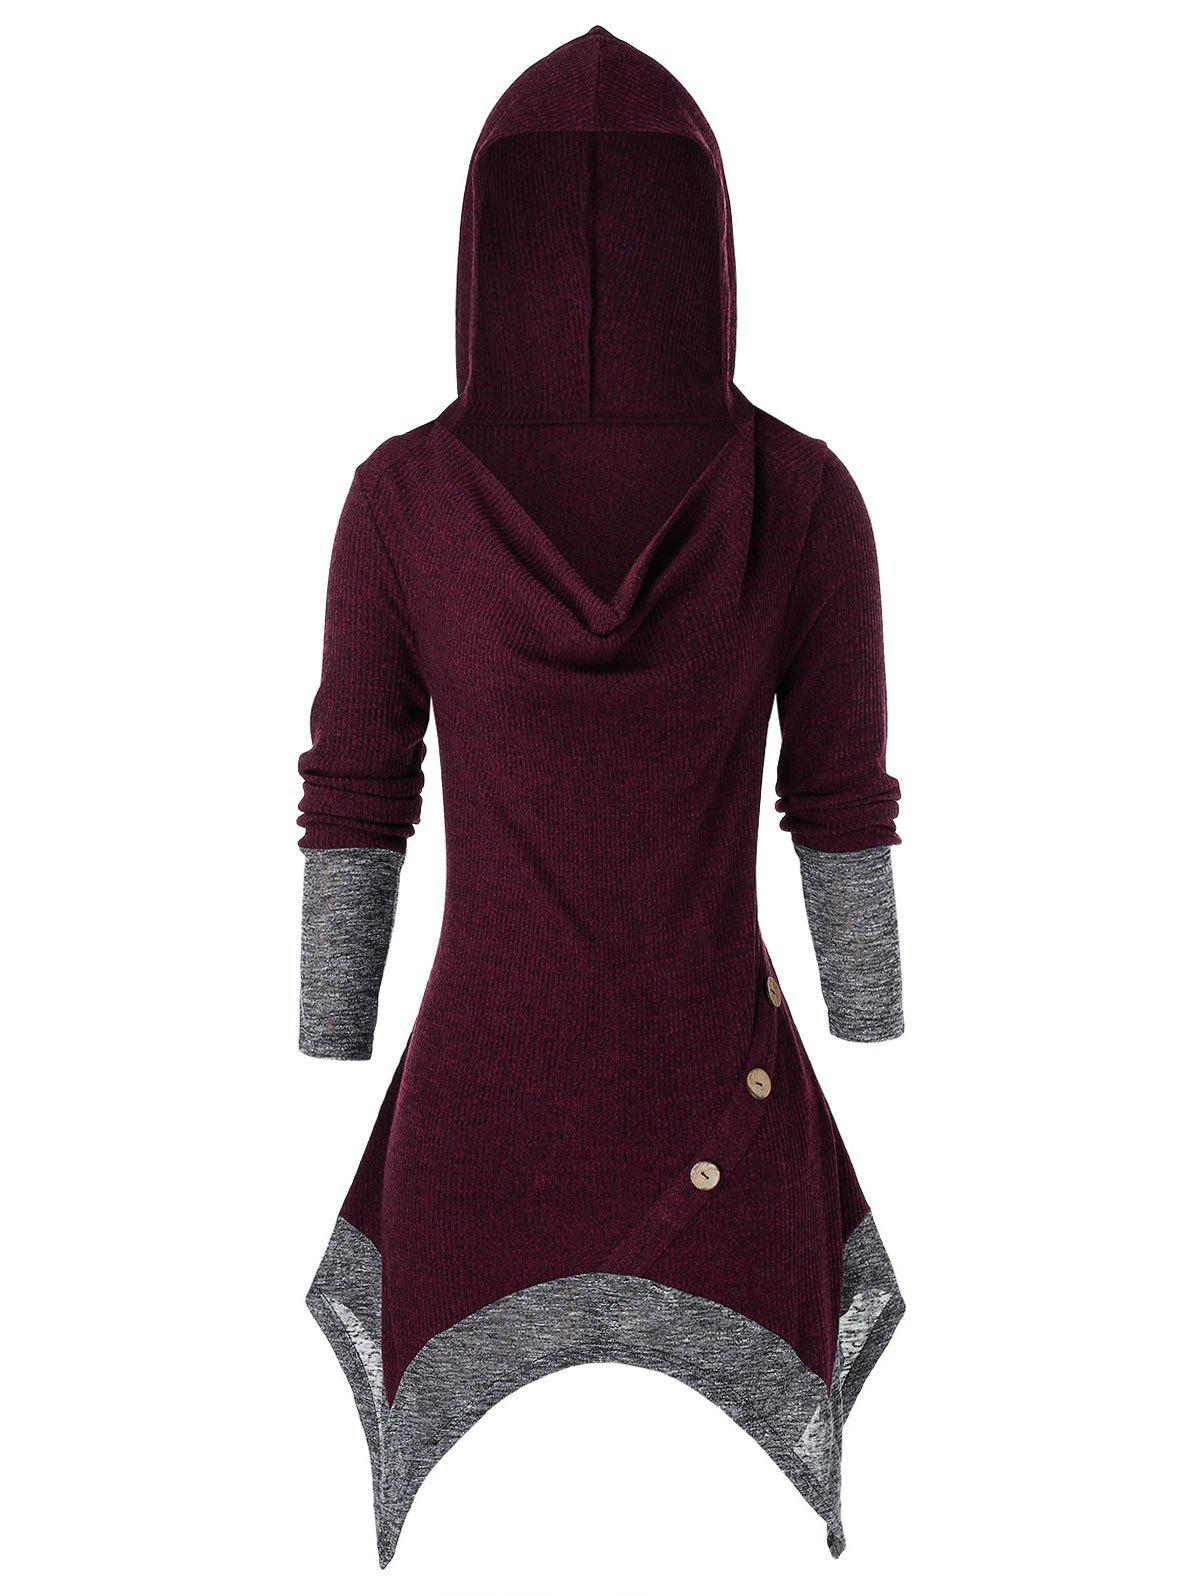 Plus Size Hooded Cowl Front Asymmetrical Knit Sweater - CHERRY RED 3X